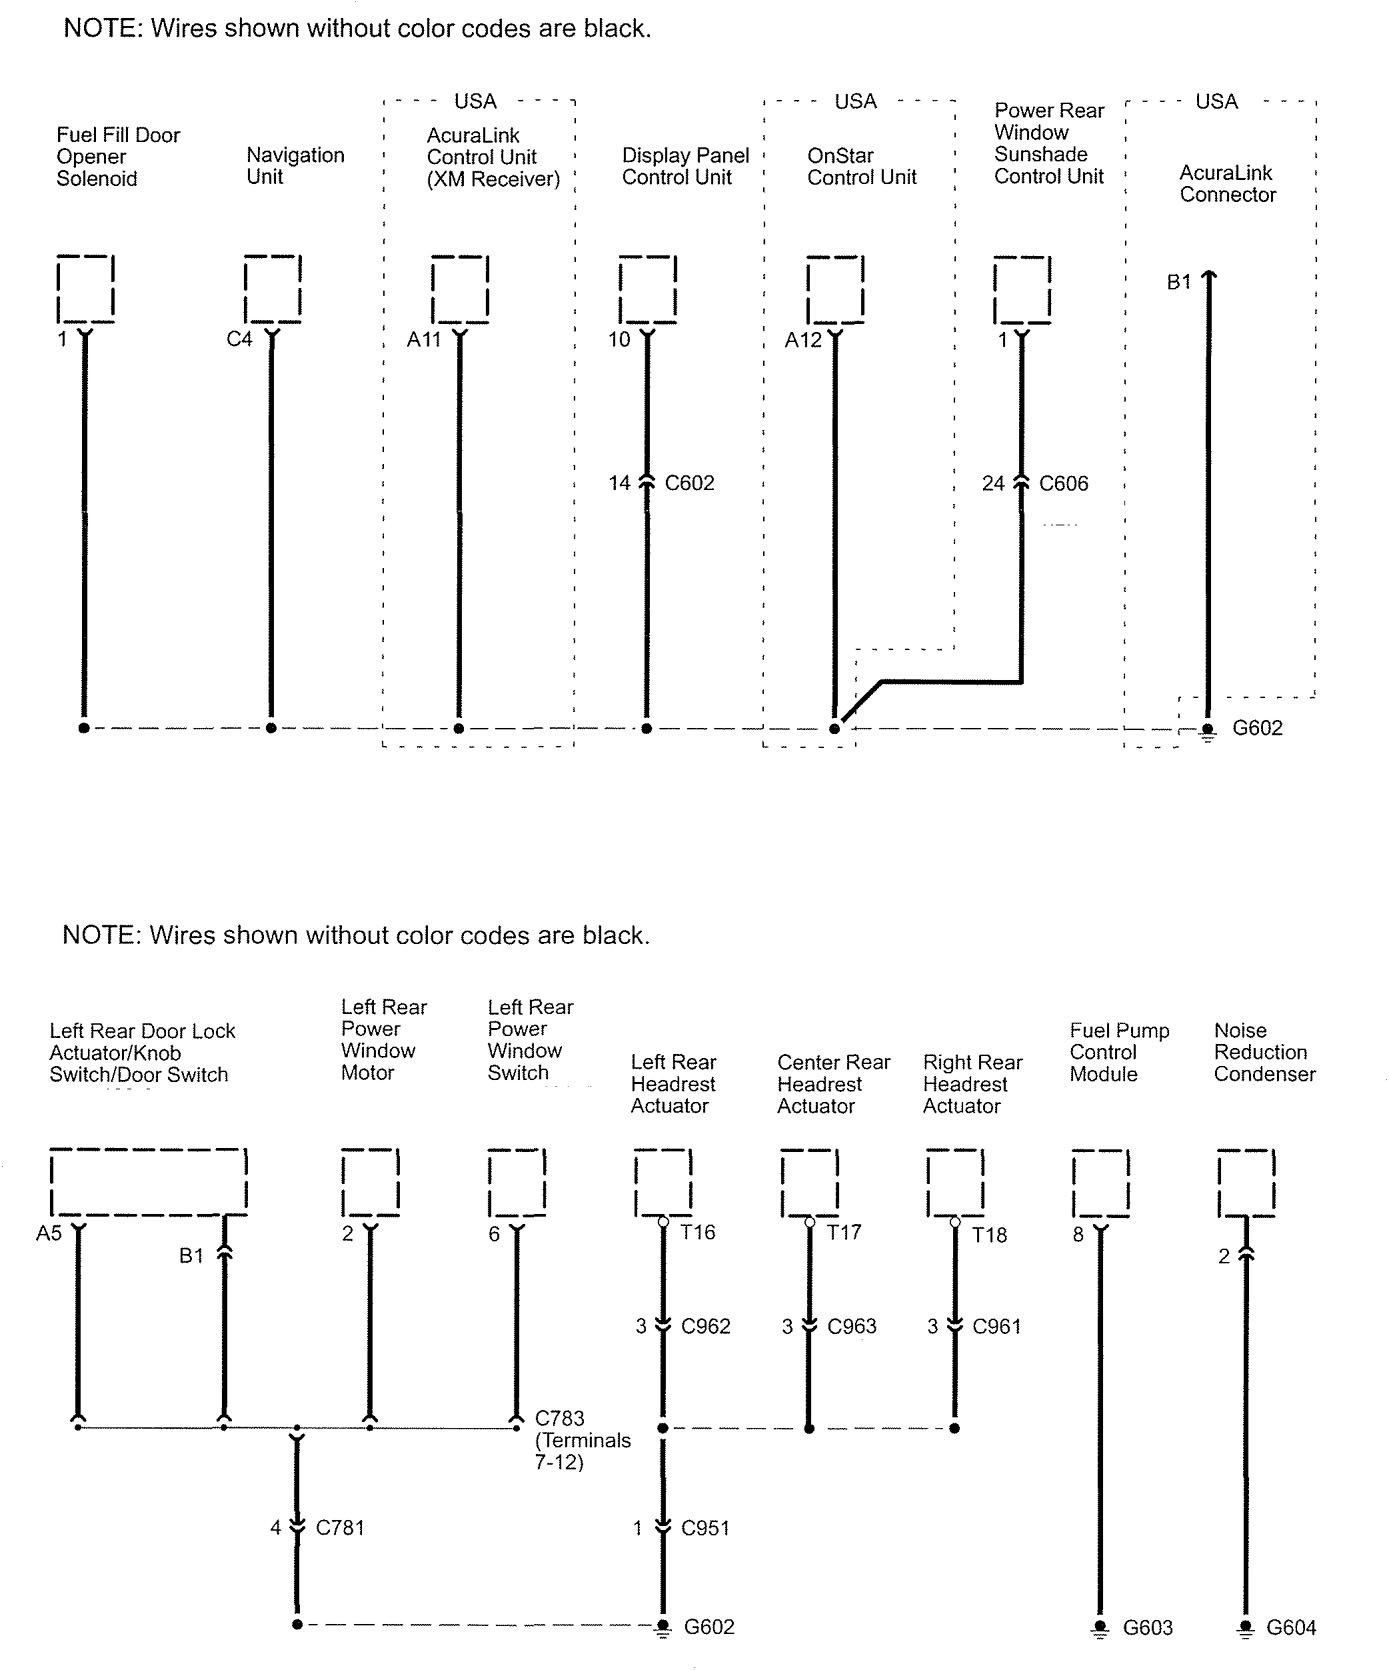 hight resolution of 2001 chrysler pt cruser fuse box diagram wiring diagrams u2022 2002 envoy fuse diagram under